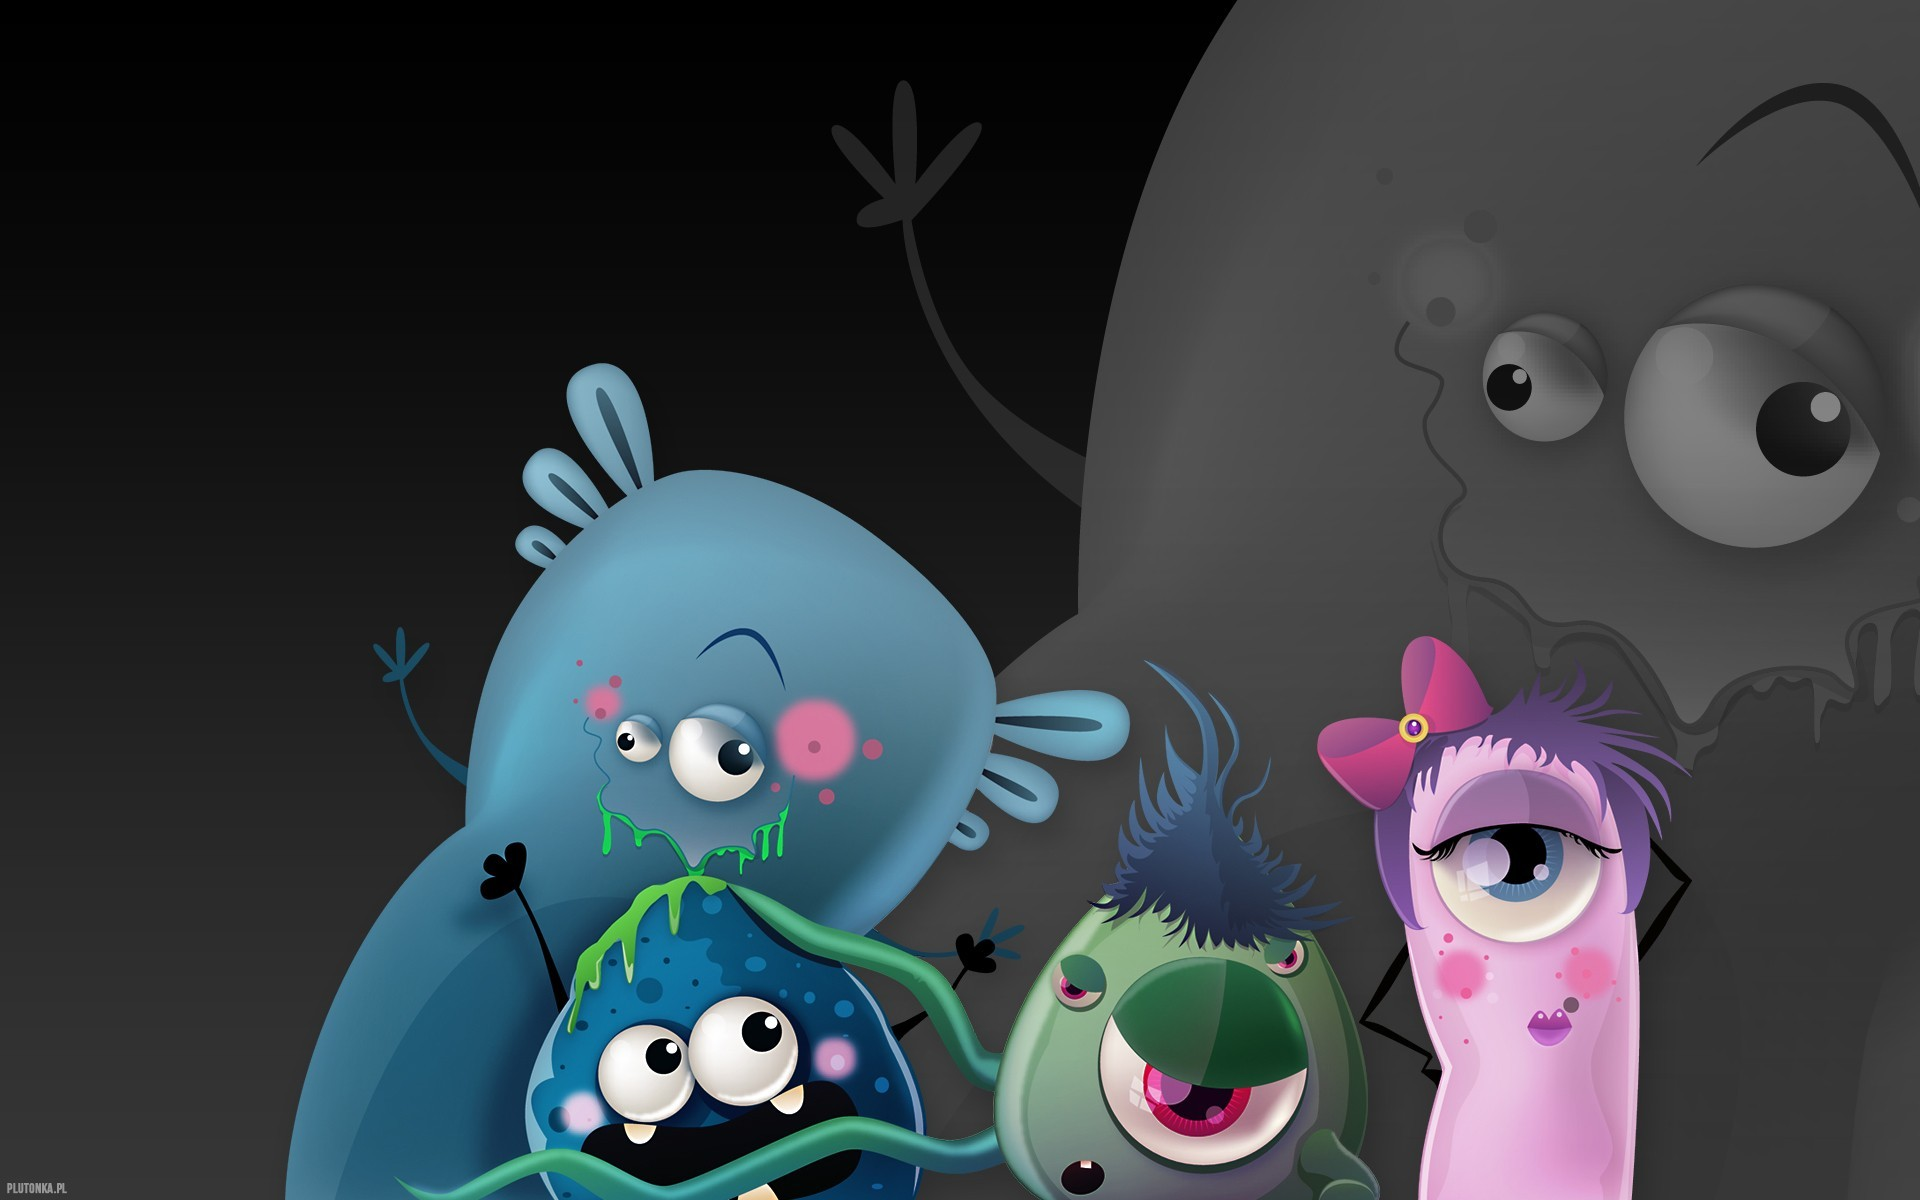 Cute Animated Monster Wallpaper 56 Images